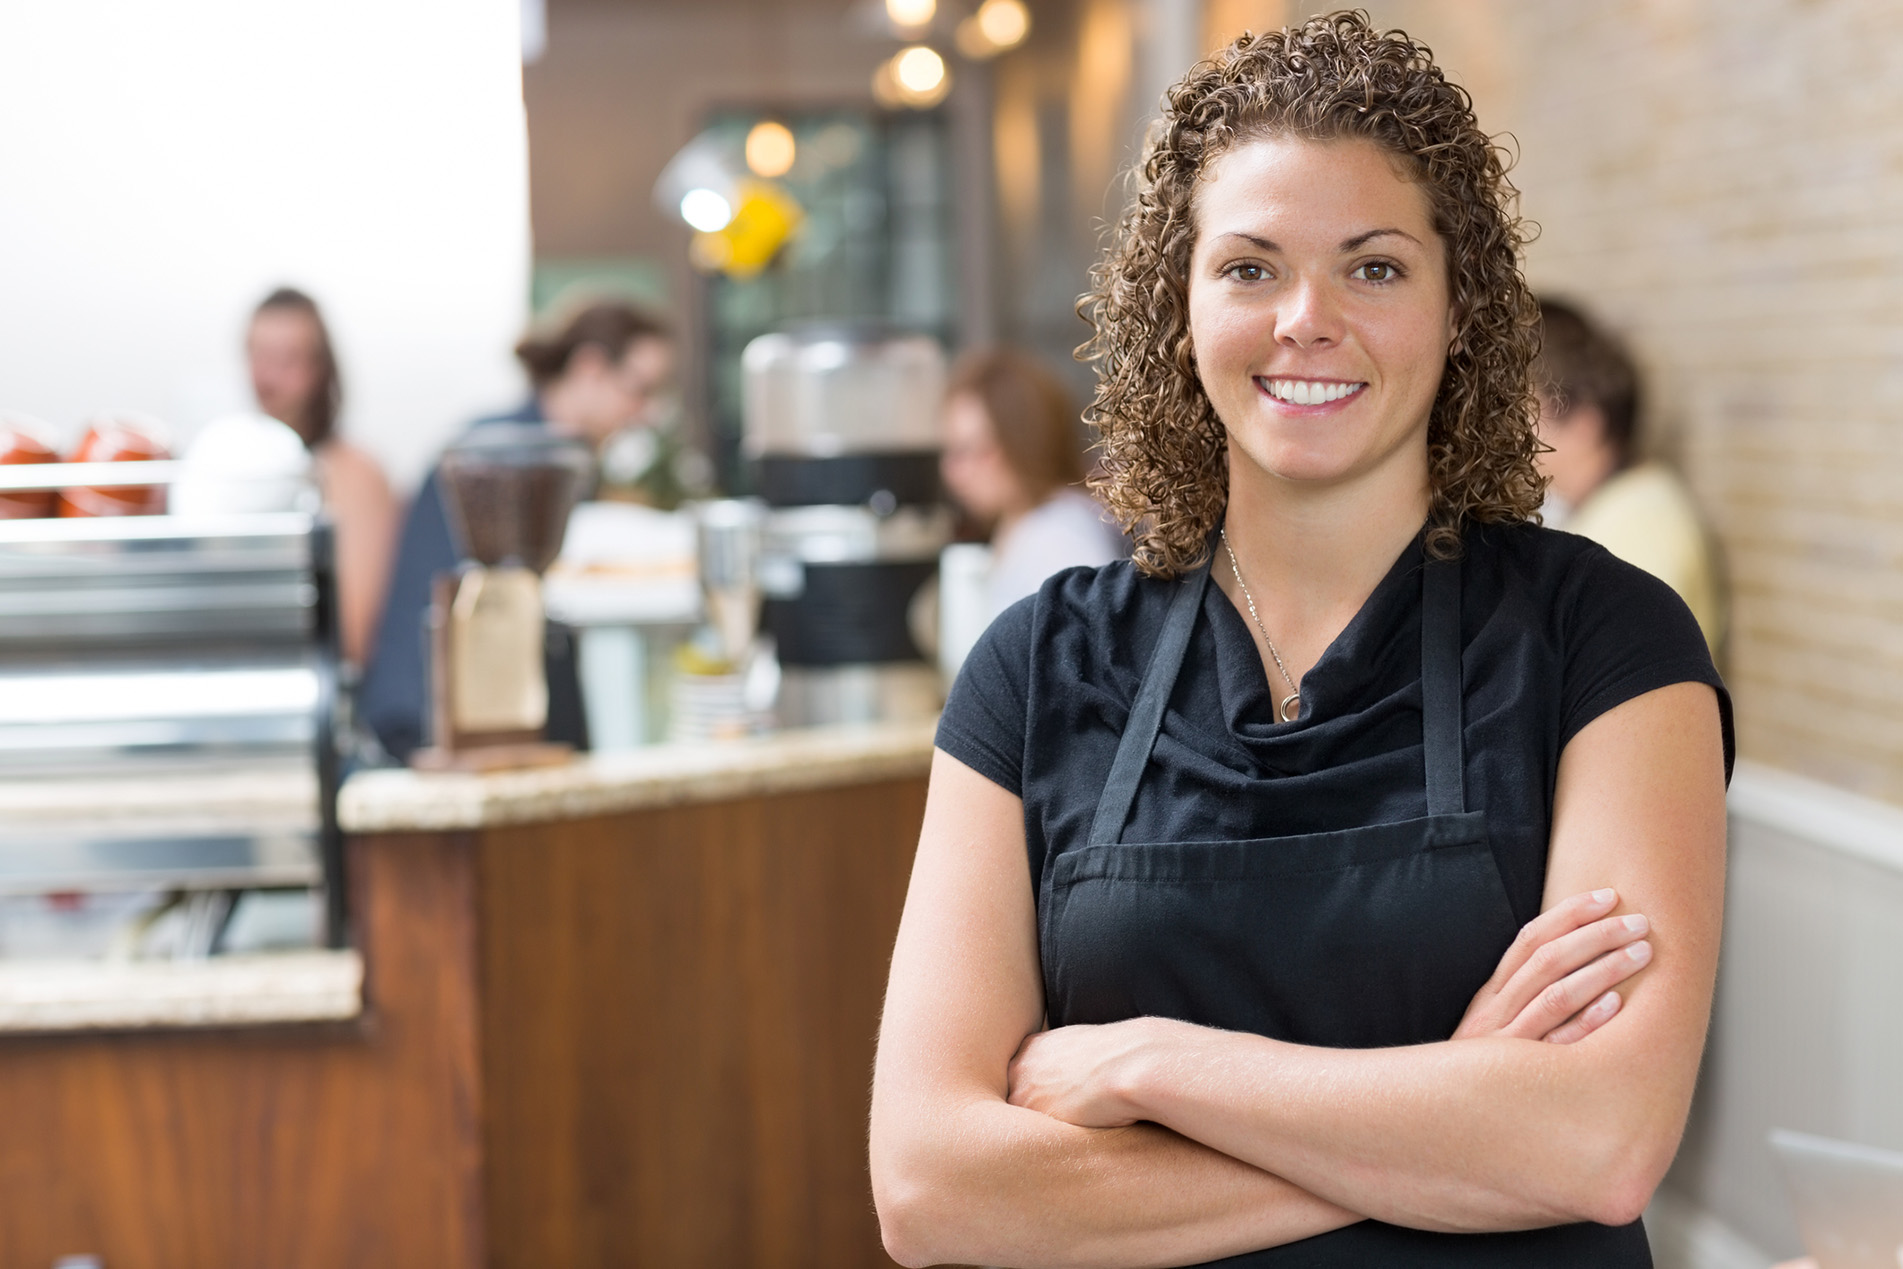 http://www.dreamstime.com/stock-images-happy-owner-standing-arms-crossed-cafe-portrait-mid-adult-female-image35691134